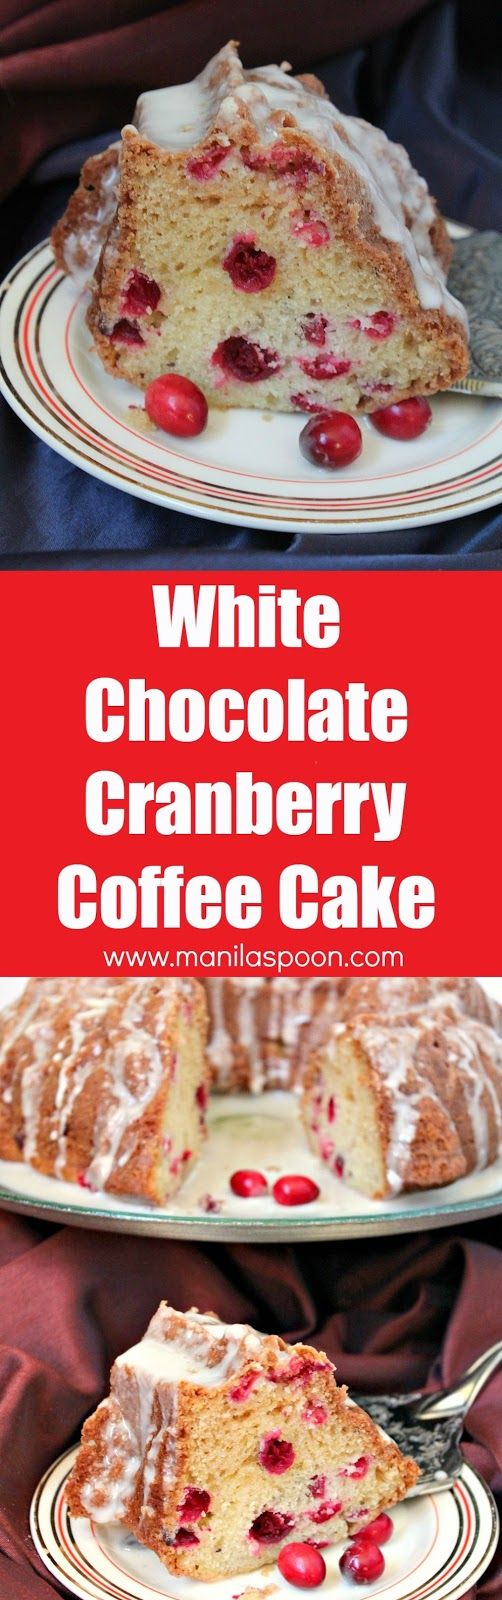 to make this moist and delicious White Chocolate Cranberry Coffee Cake ...